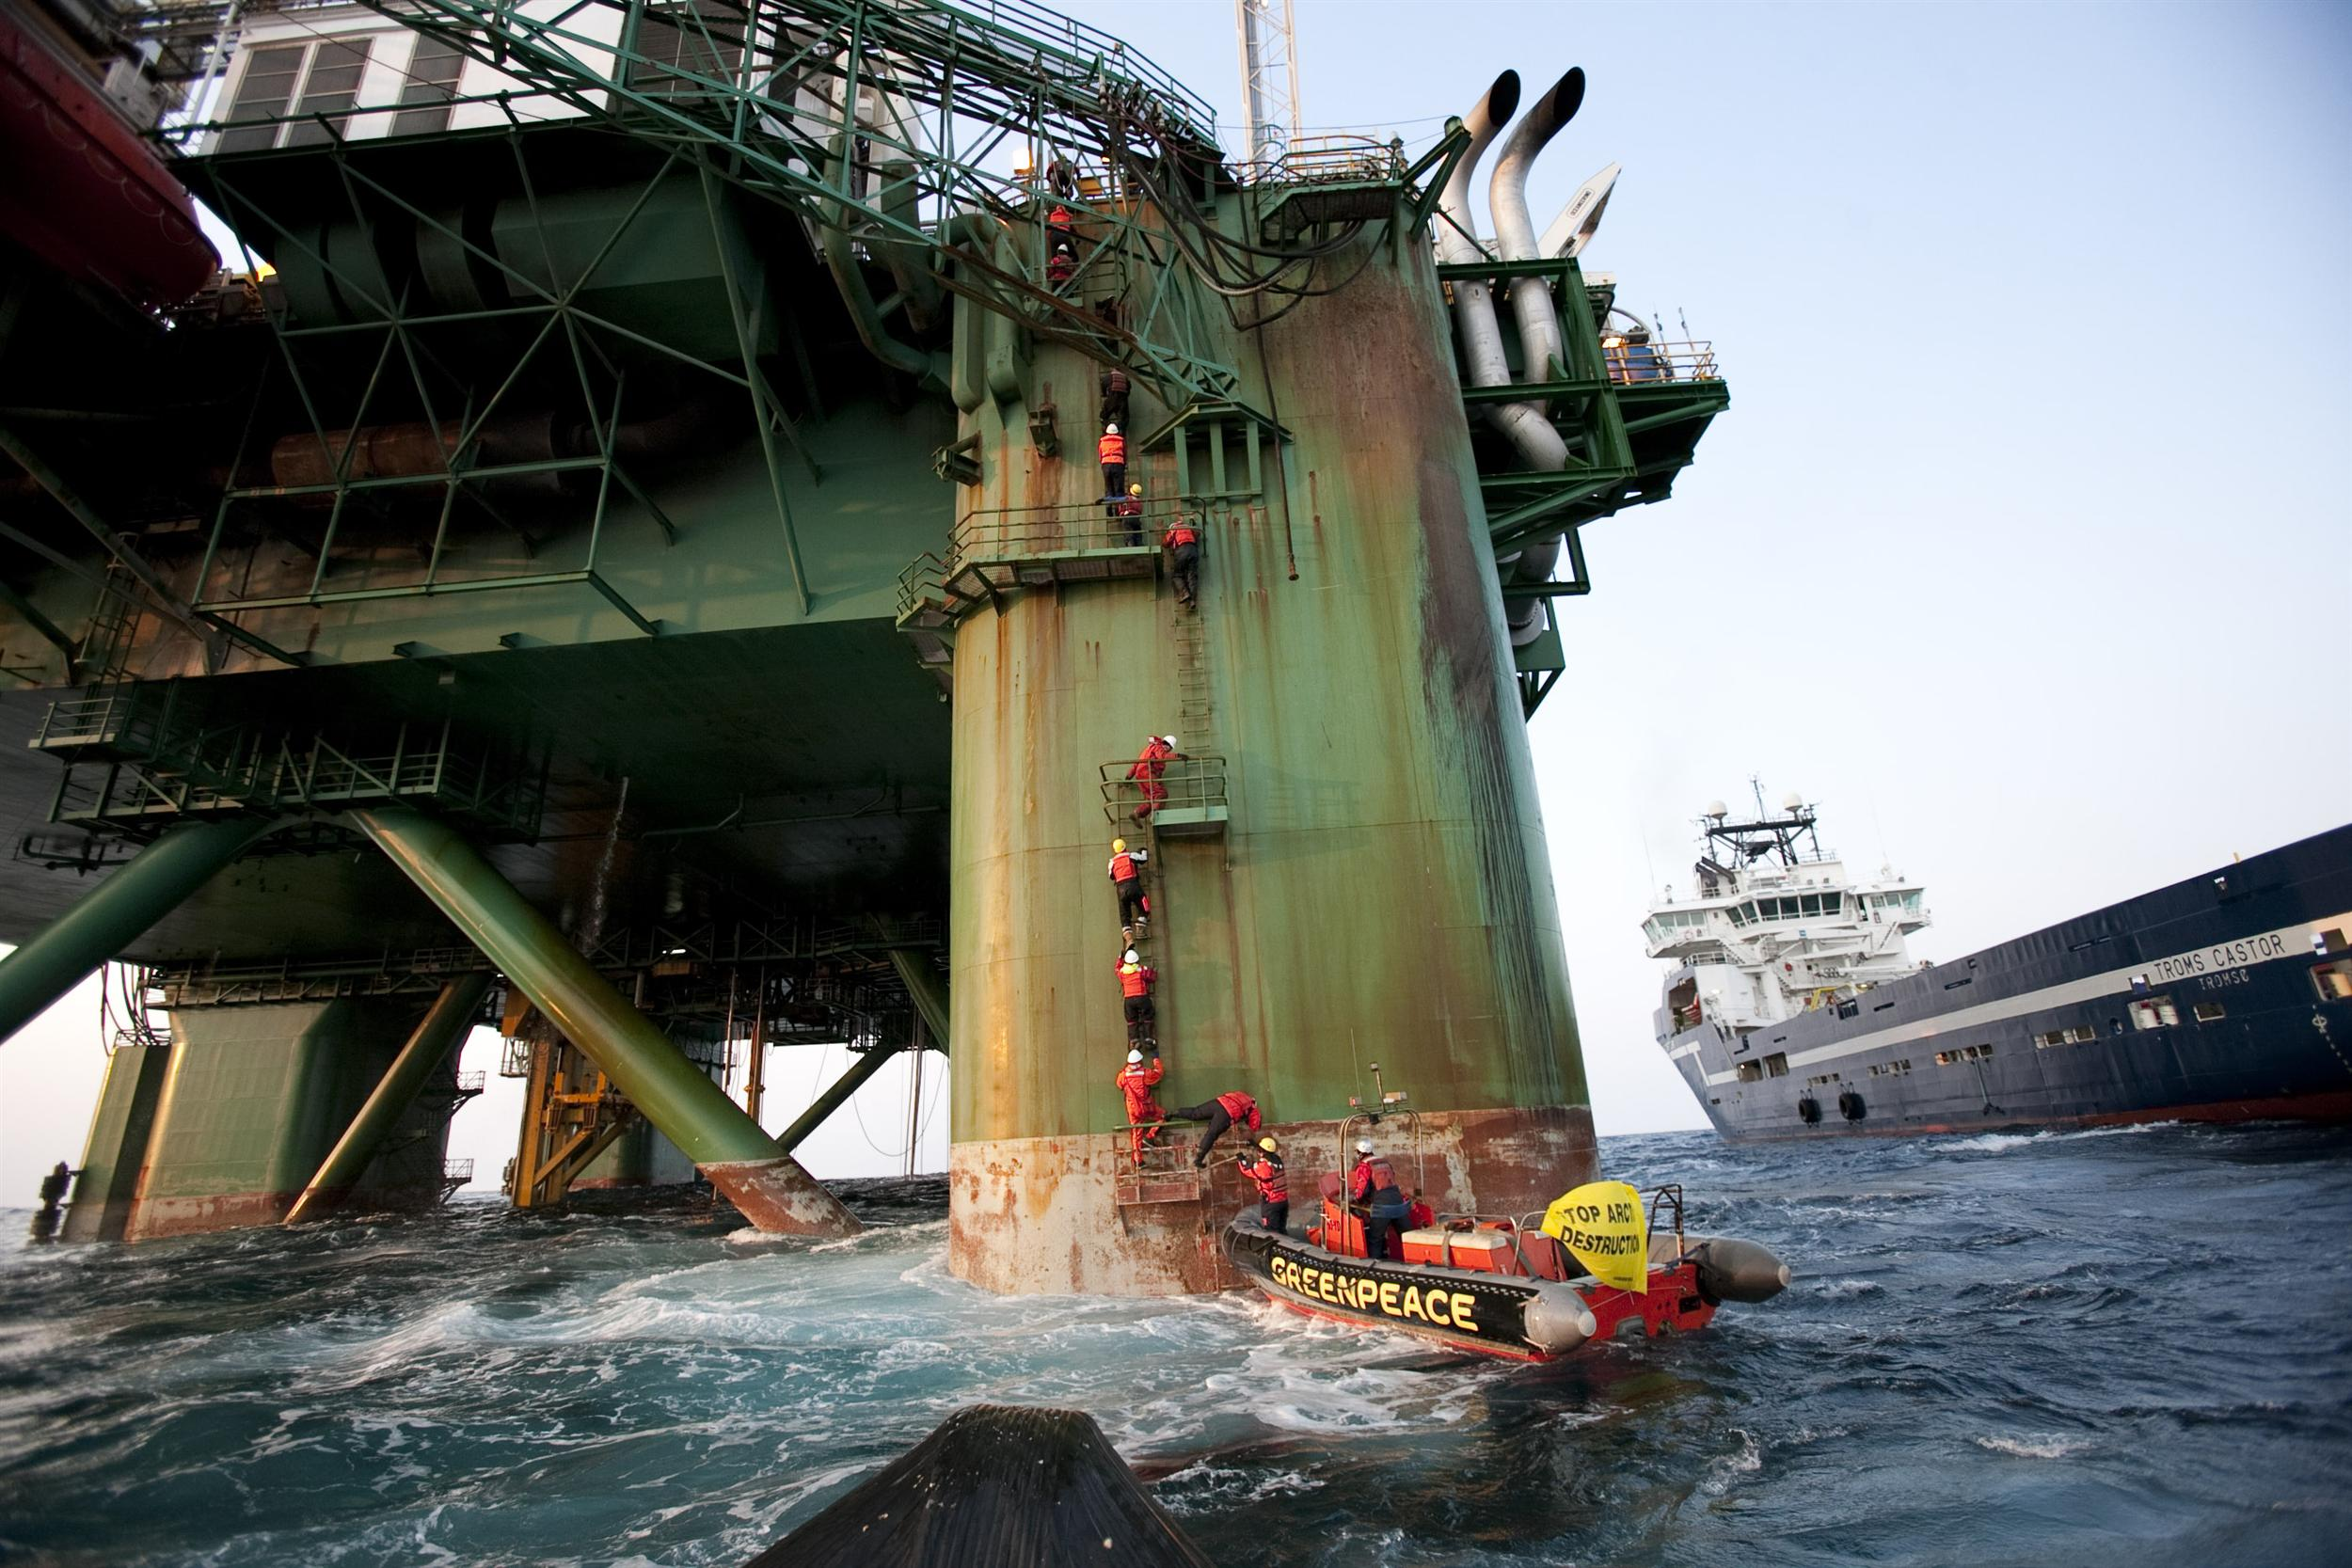 activists climb up an oil rig out of a greenpeace rhib